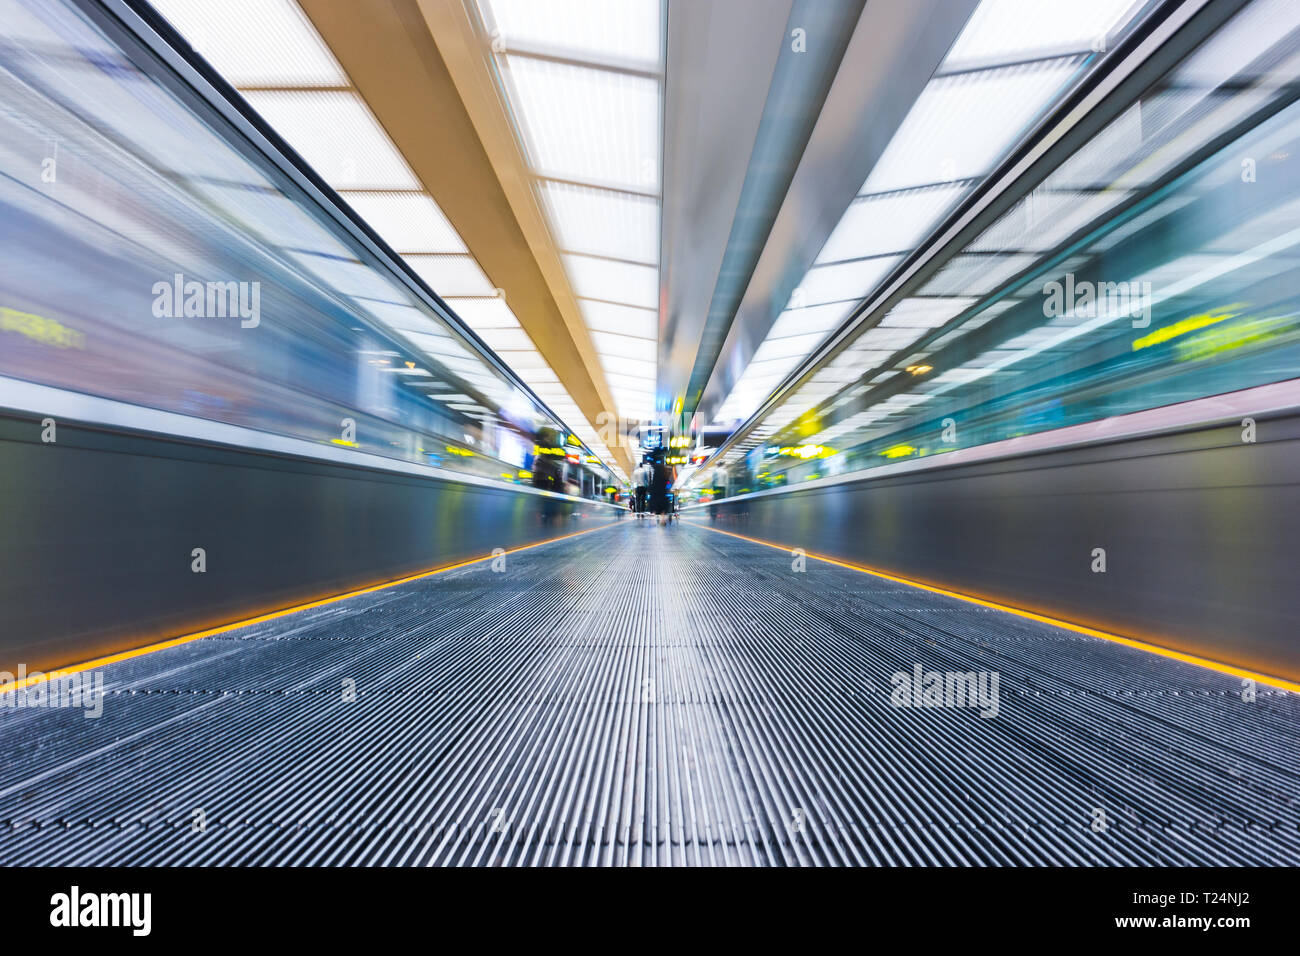 Moving walkway or travelator with motion blur at international airport - Stock Image